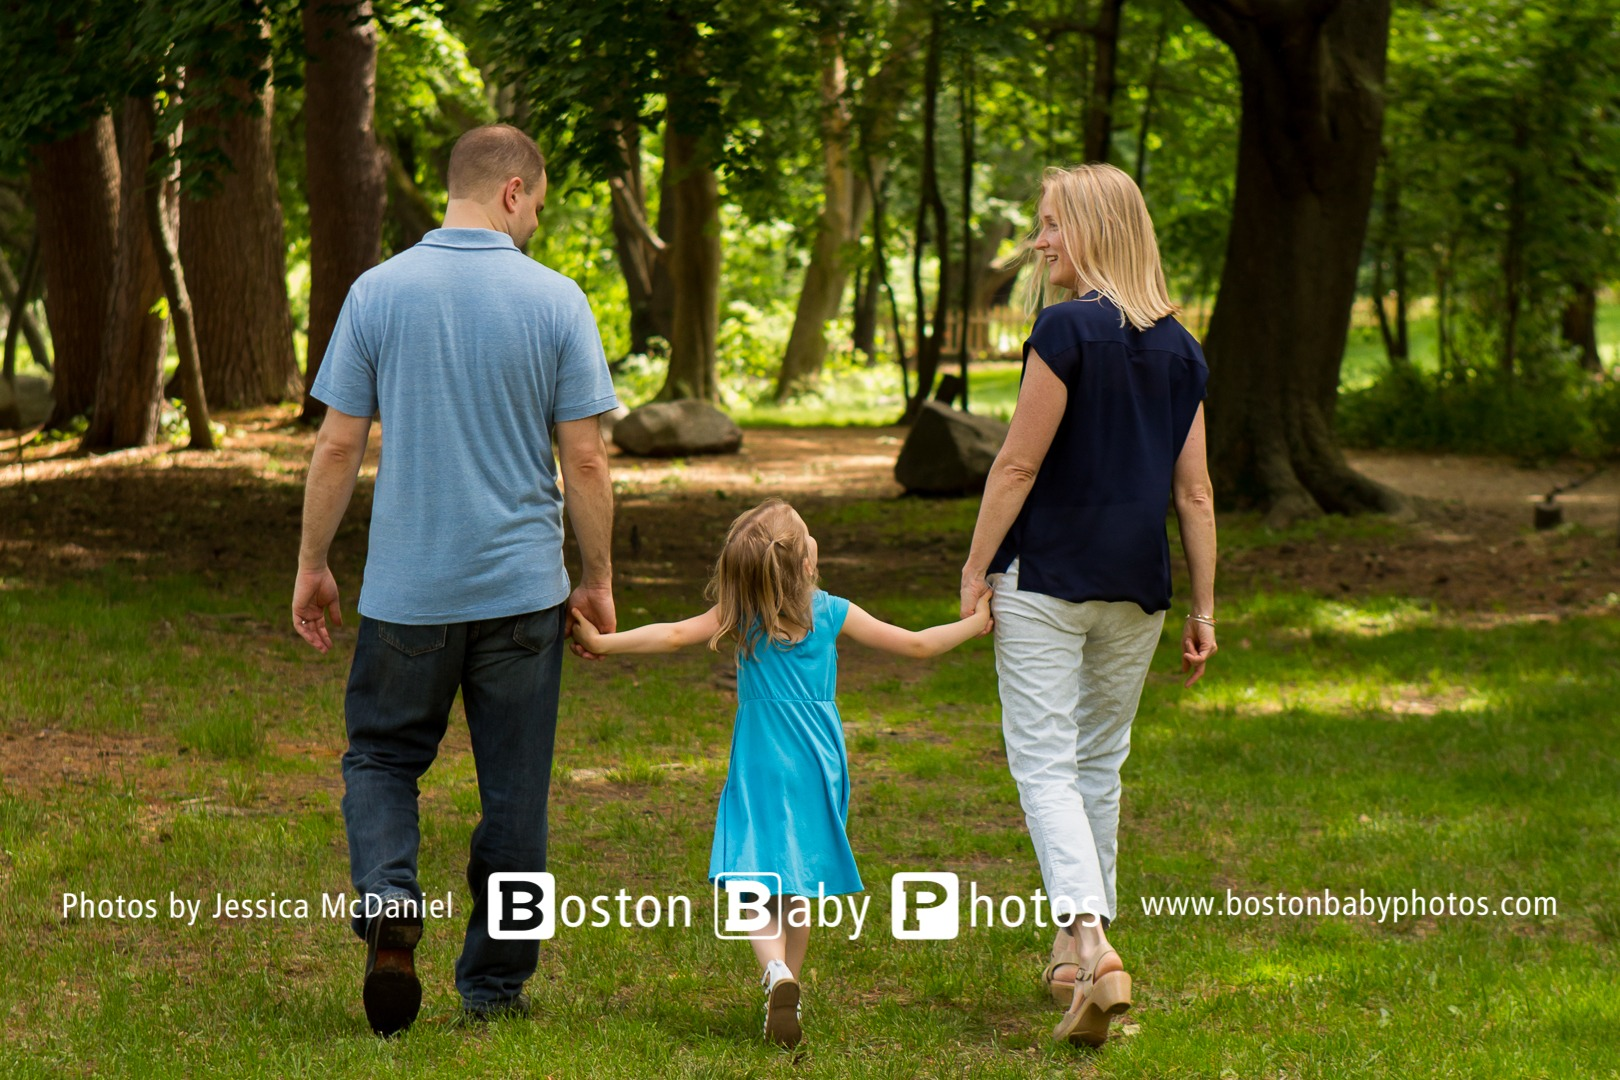 Milton, MA Family Photographer - A summer minishoot at Turner's Pond